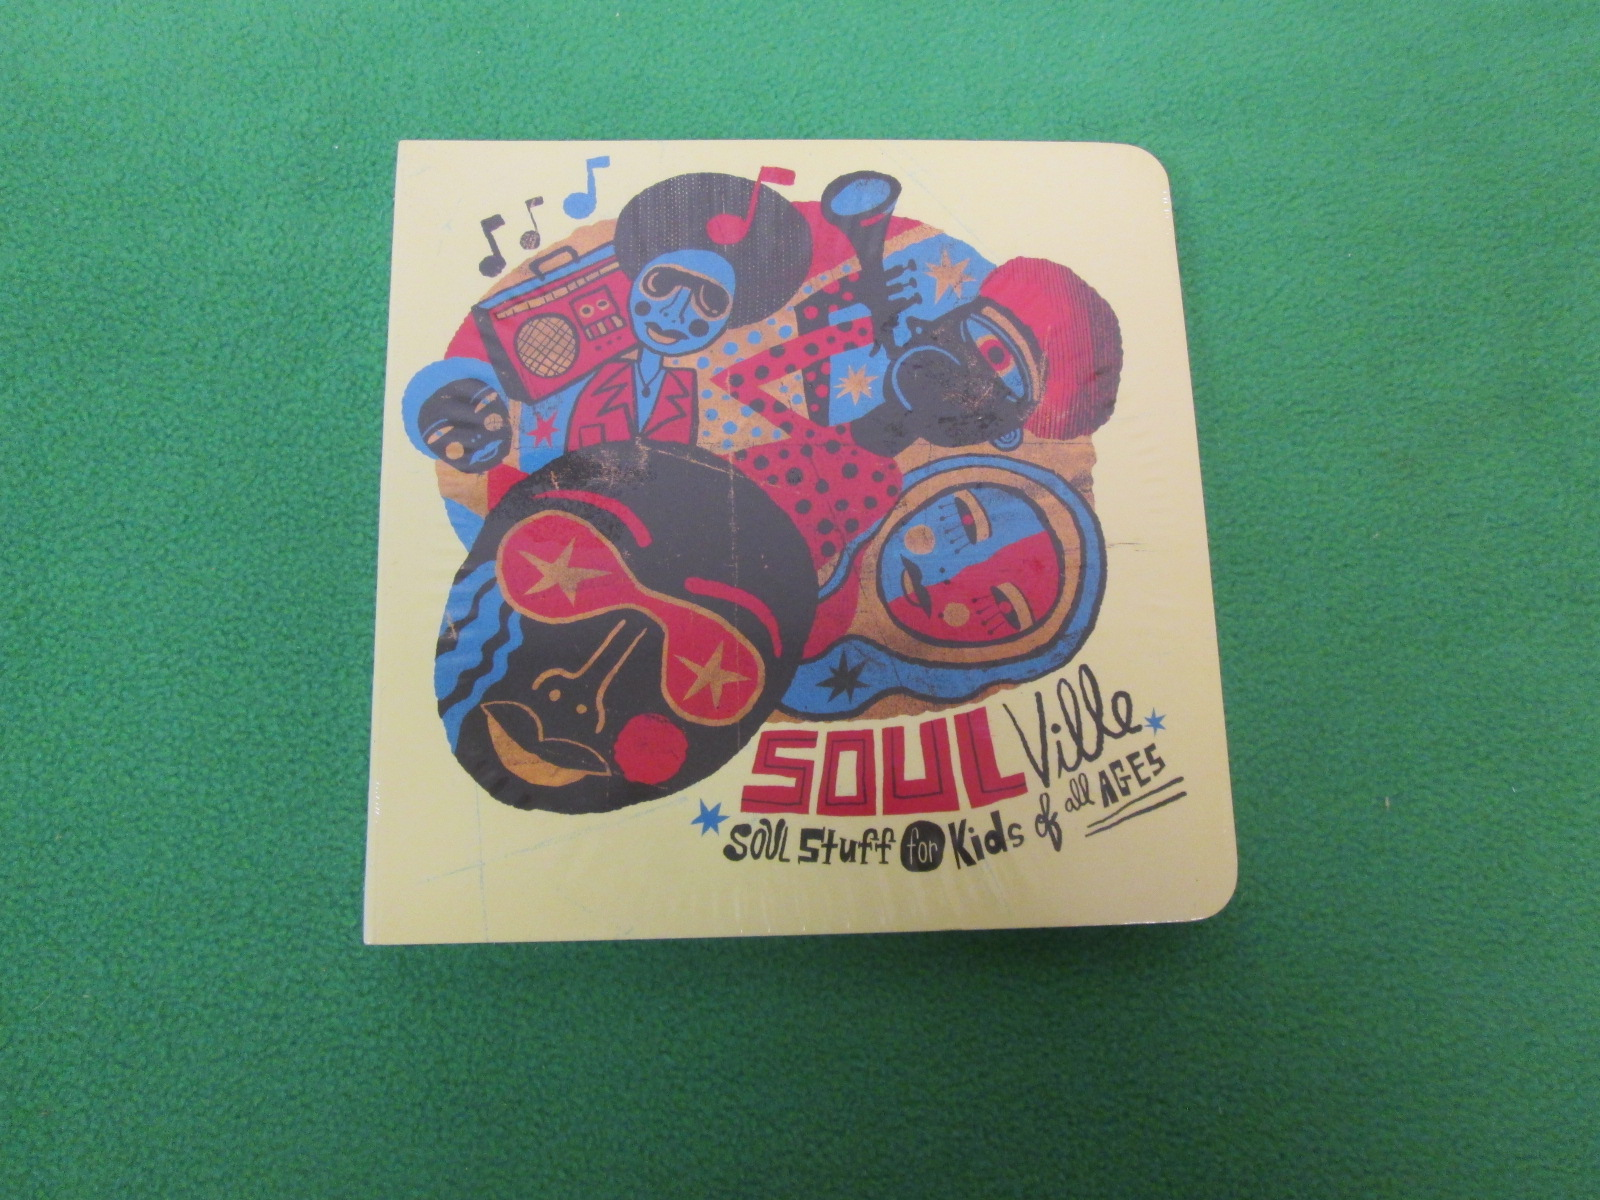 Soulville: Soul Stuff For Kids Of All Ages On Audio CD